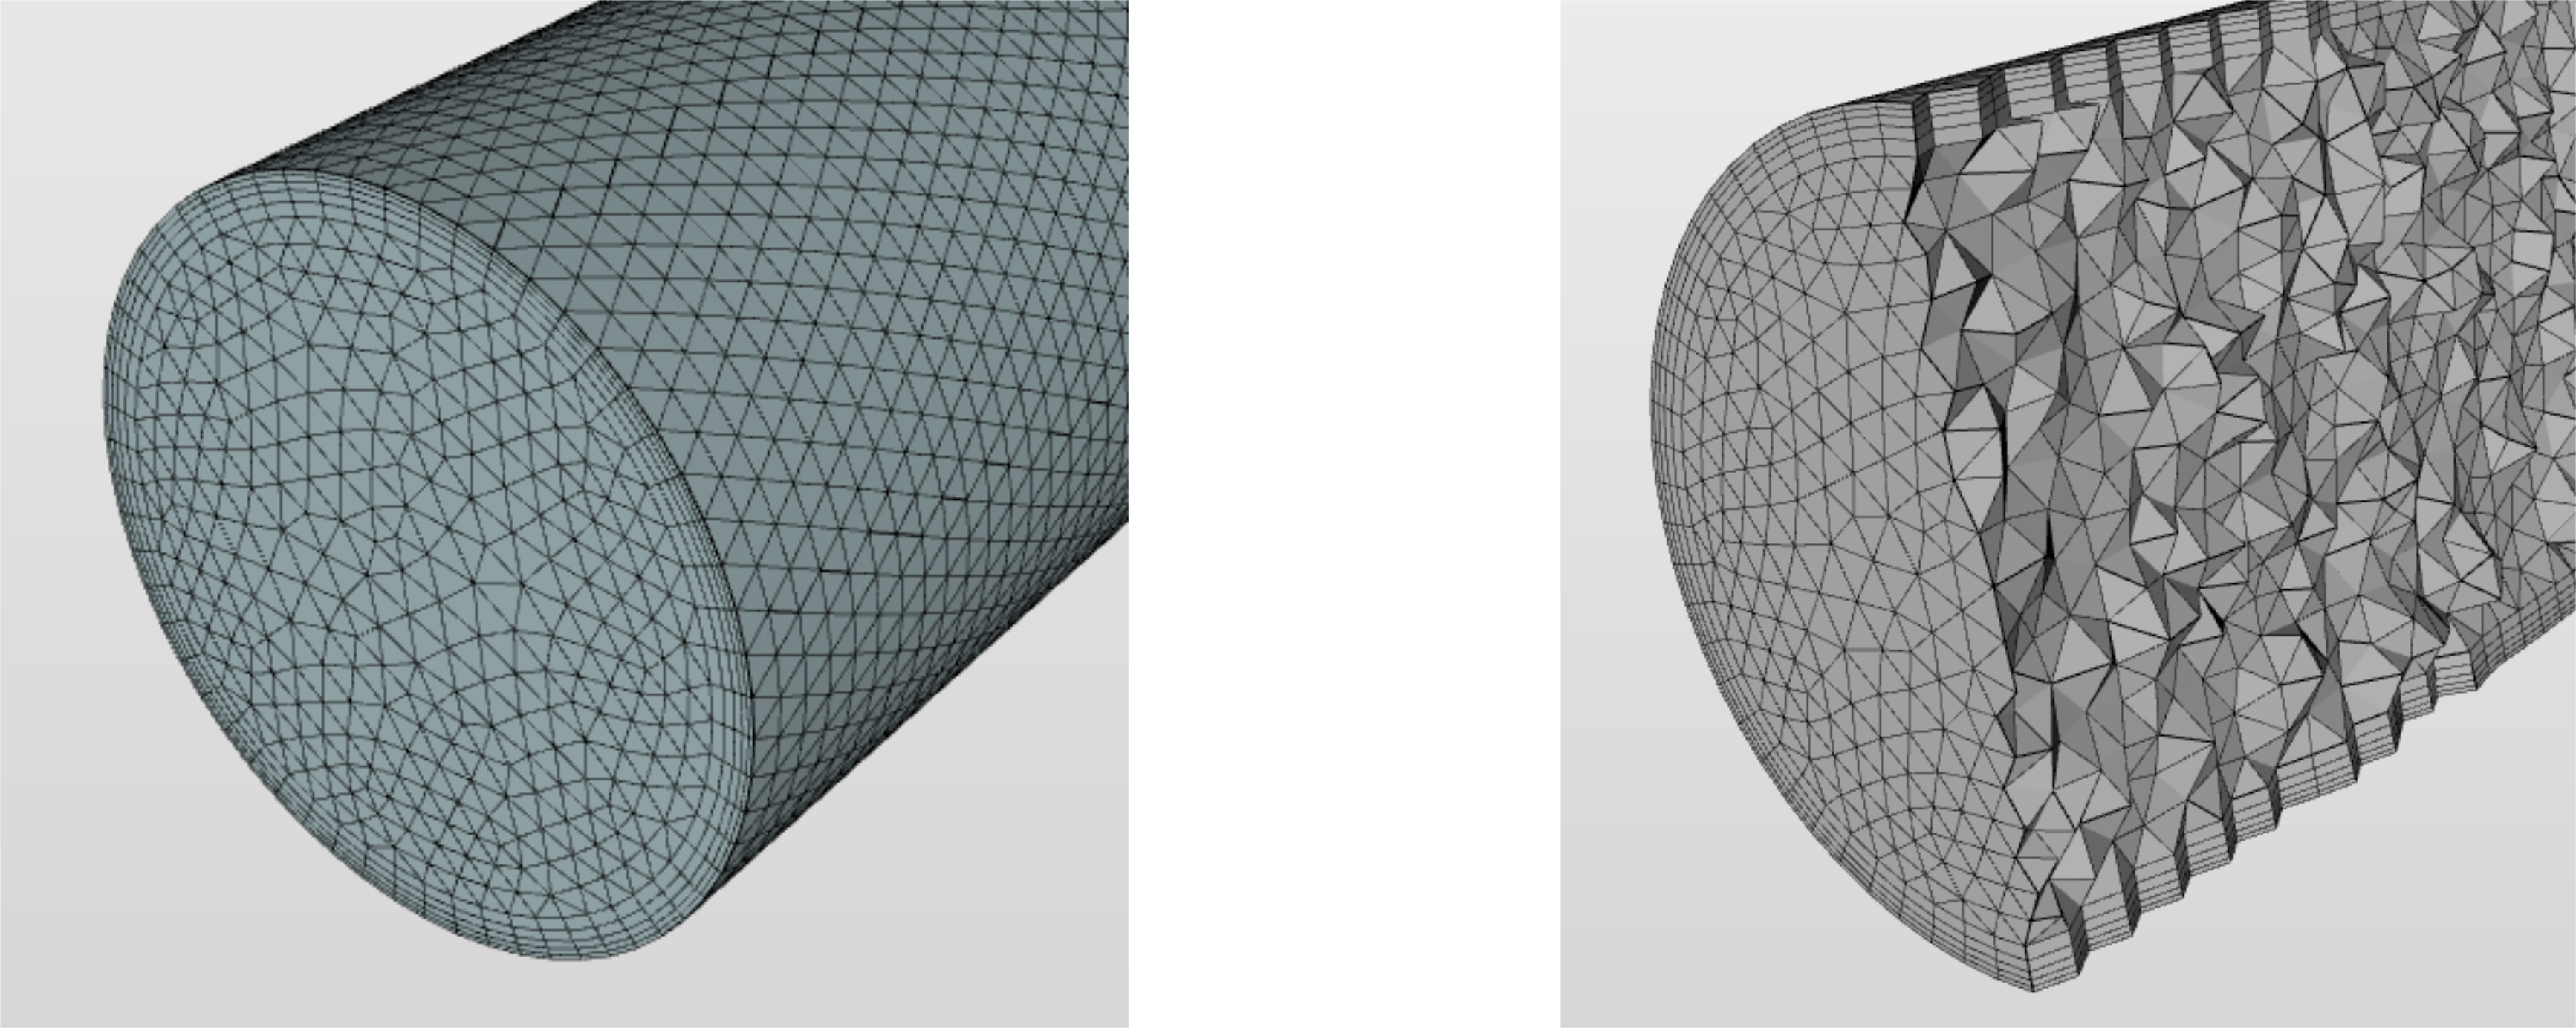 mesh and internal cells